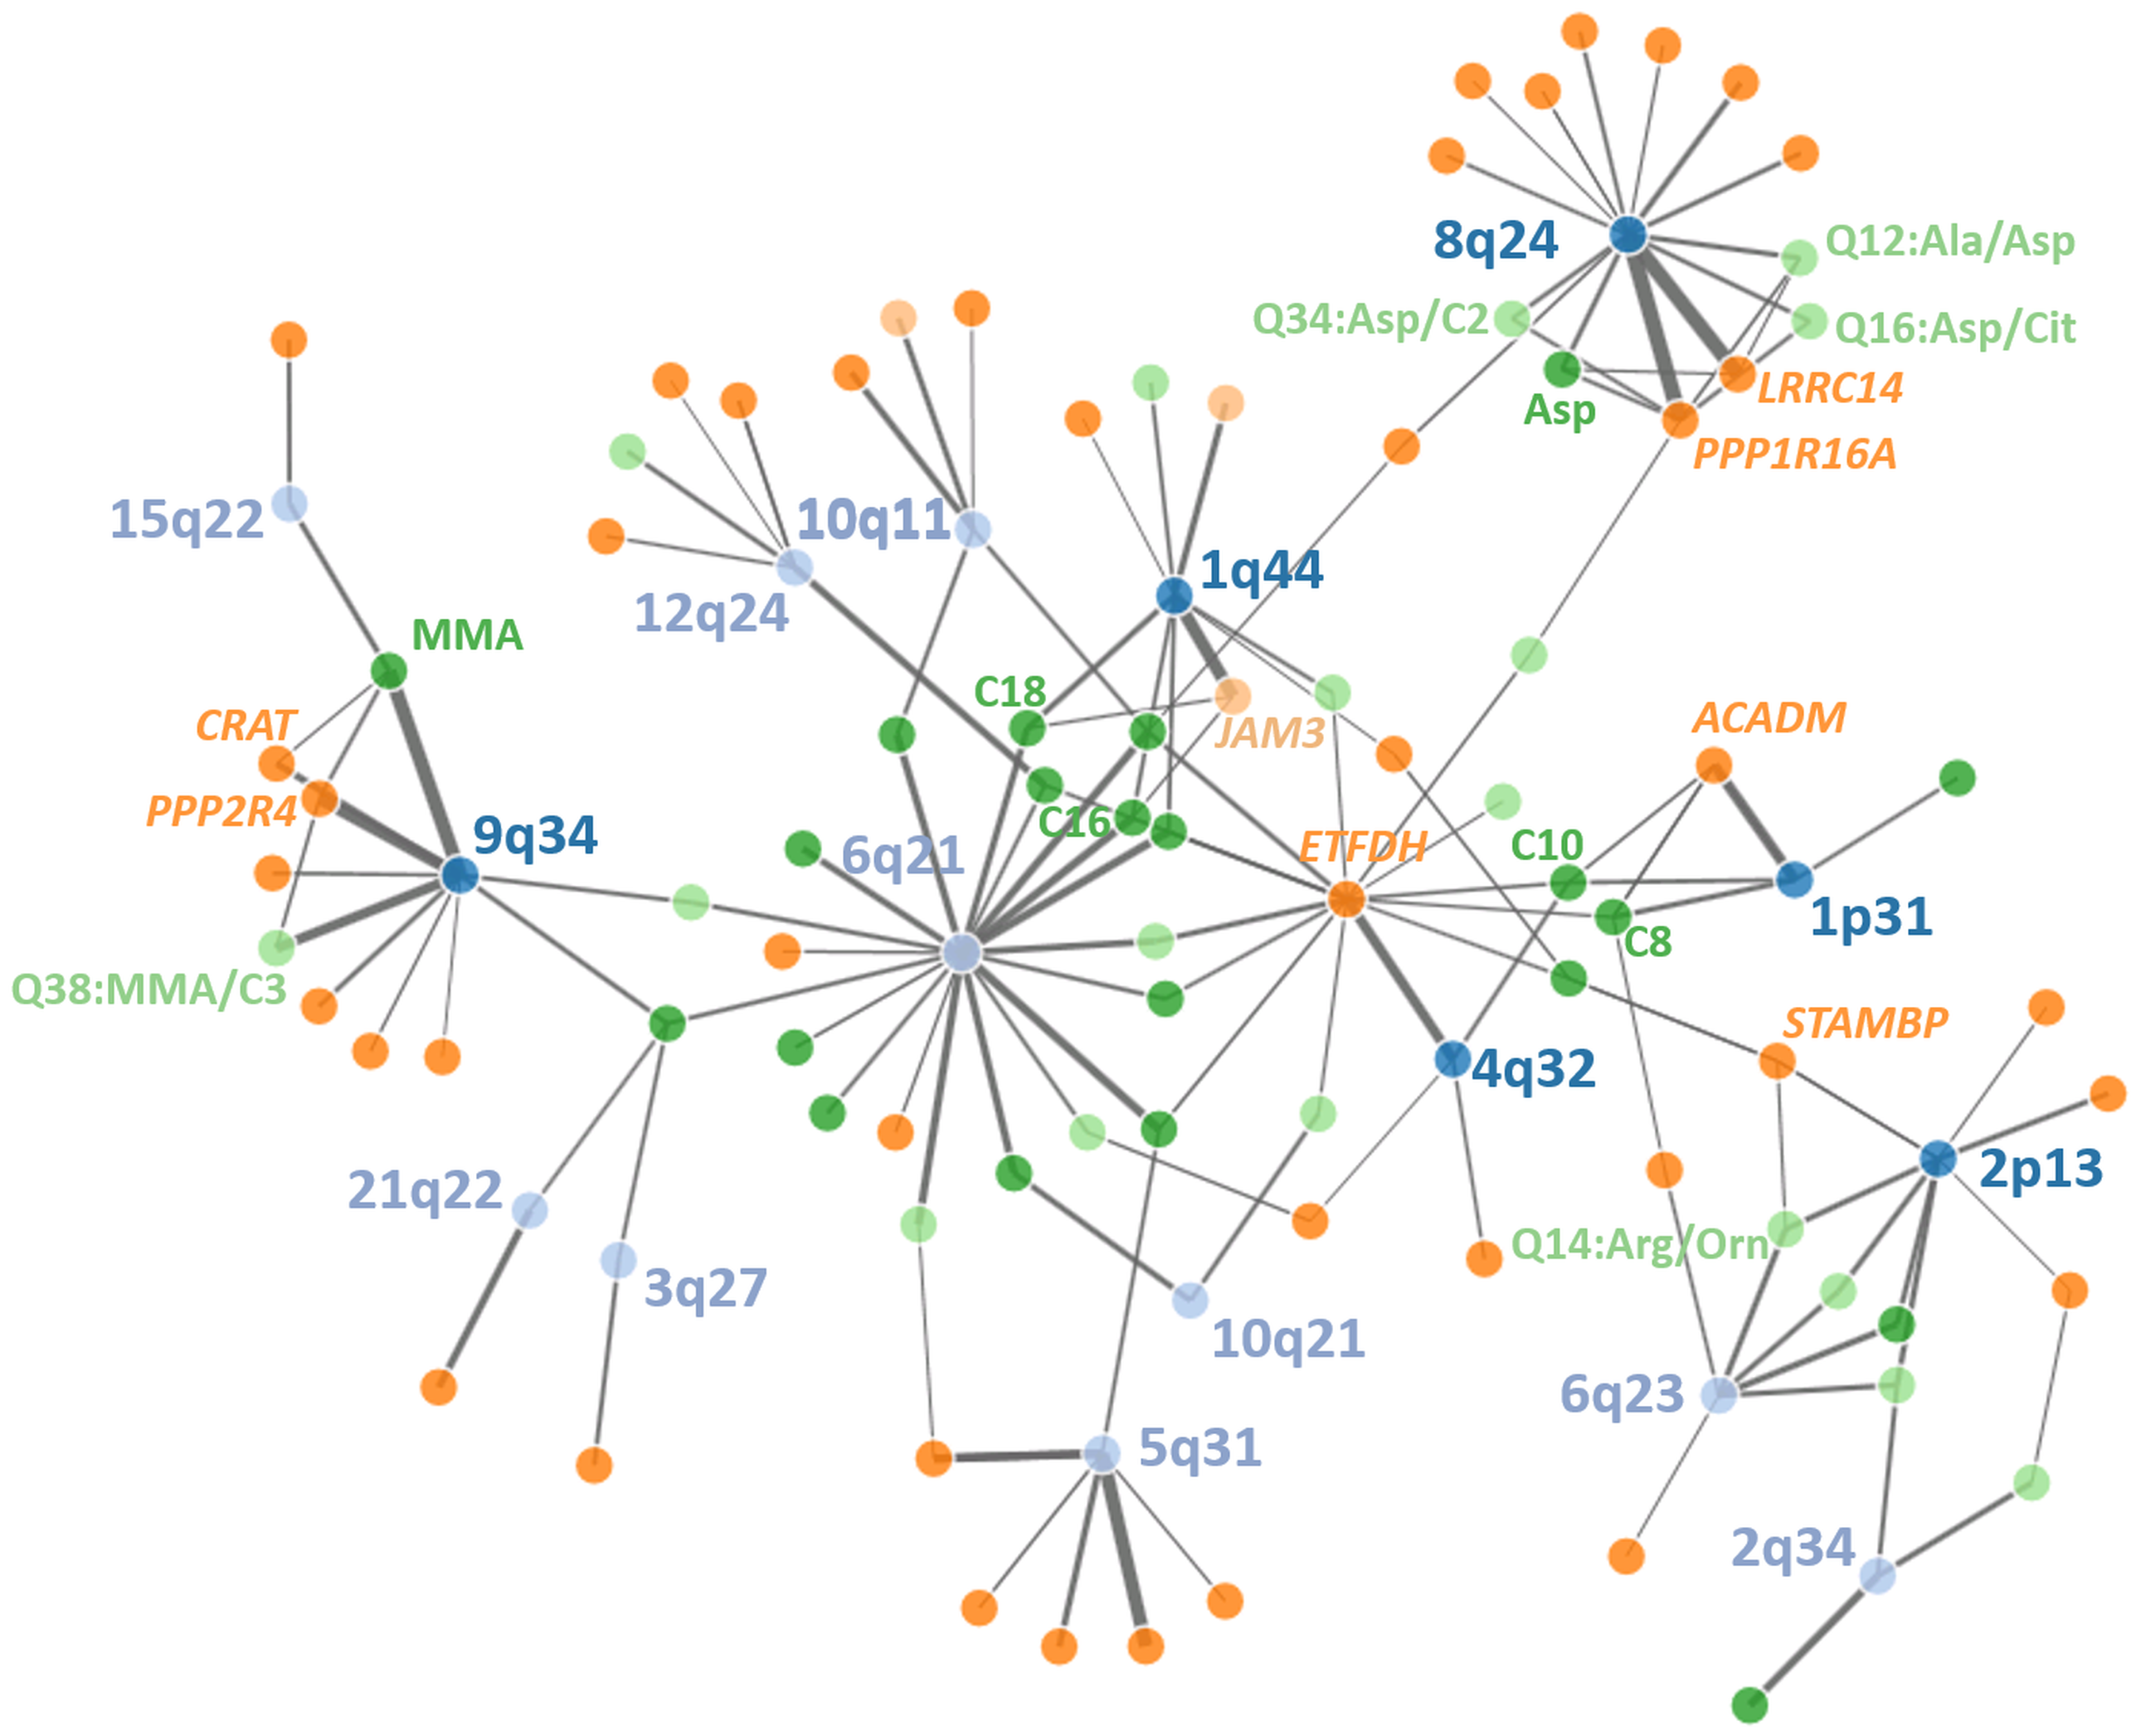 Network of discovered loci, eQTLs and metabolites.